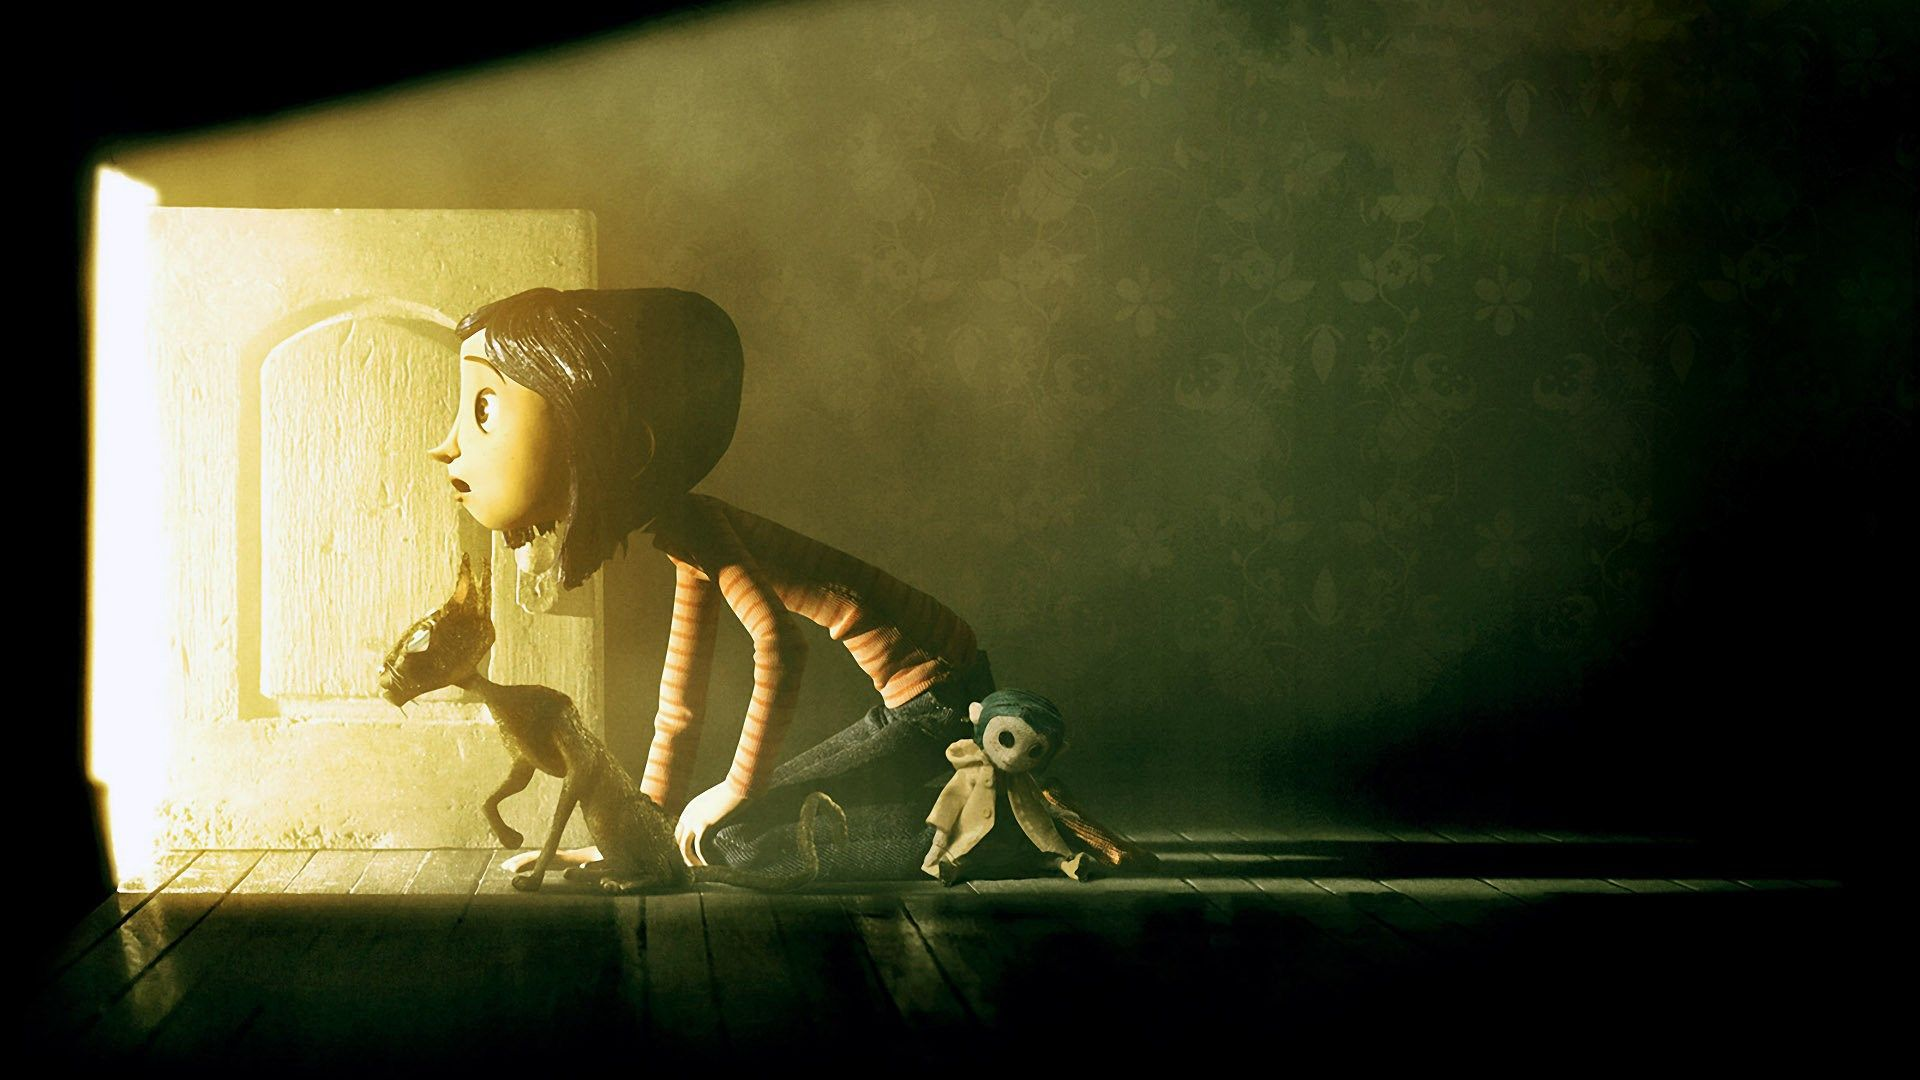 Silver Stevenson Coraline Backgrounds For Laptop 1920x1080 Px Coraline Coraline Movie Halloween Movies